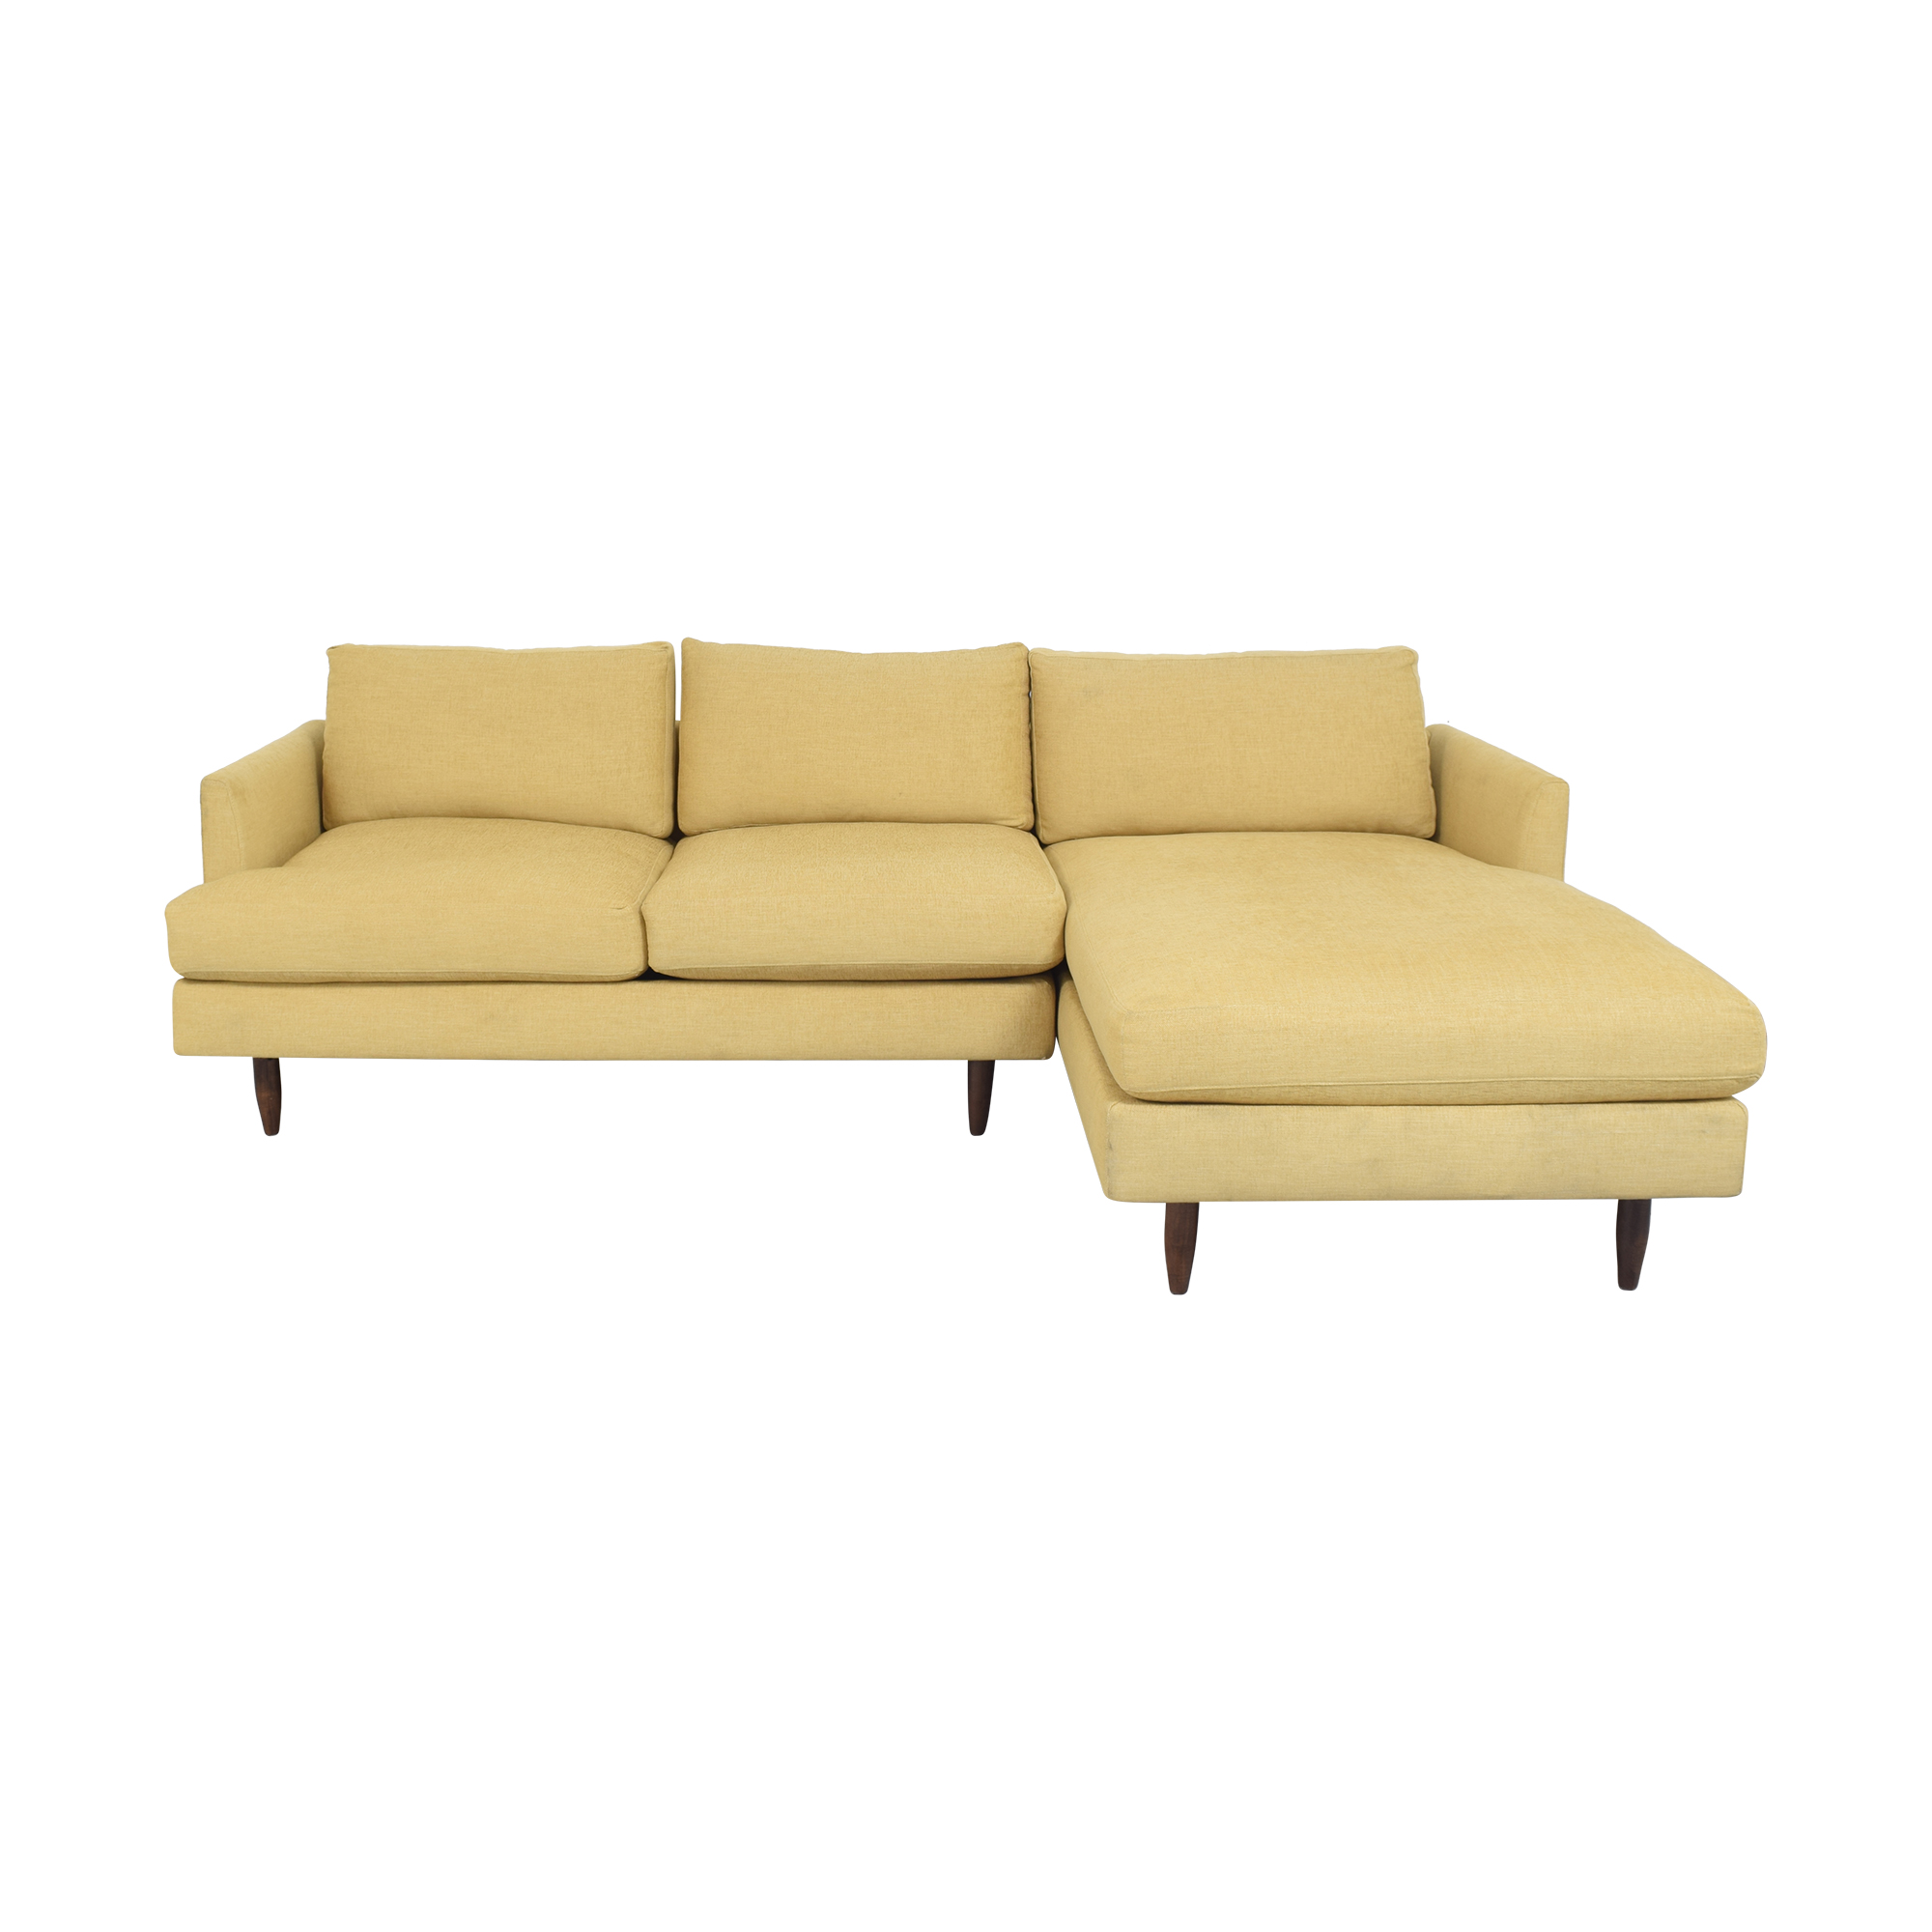 BenchMade Modern BenchMade Modern Crowd Pleaser Sofa with Chaise dimensions